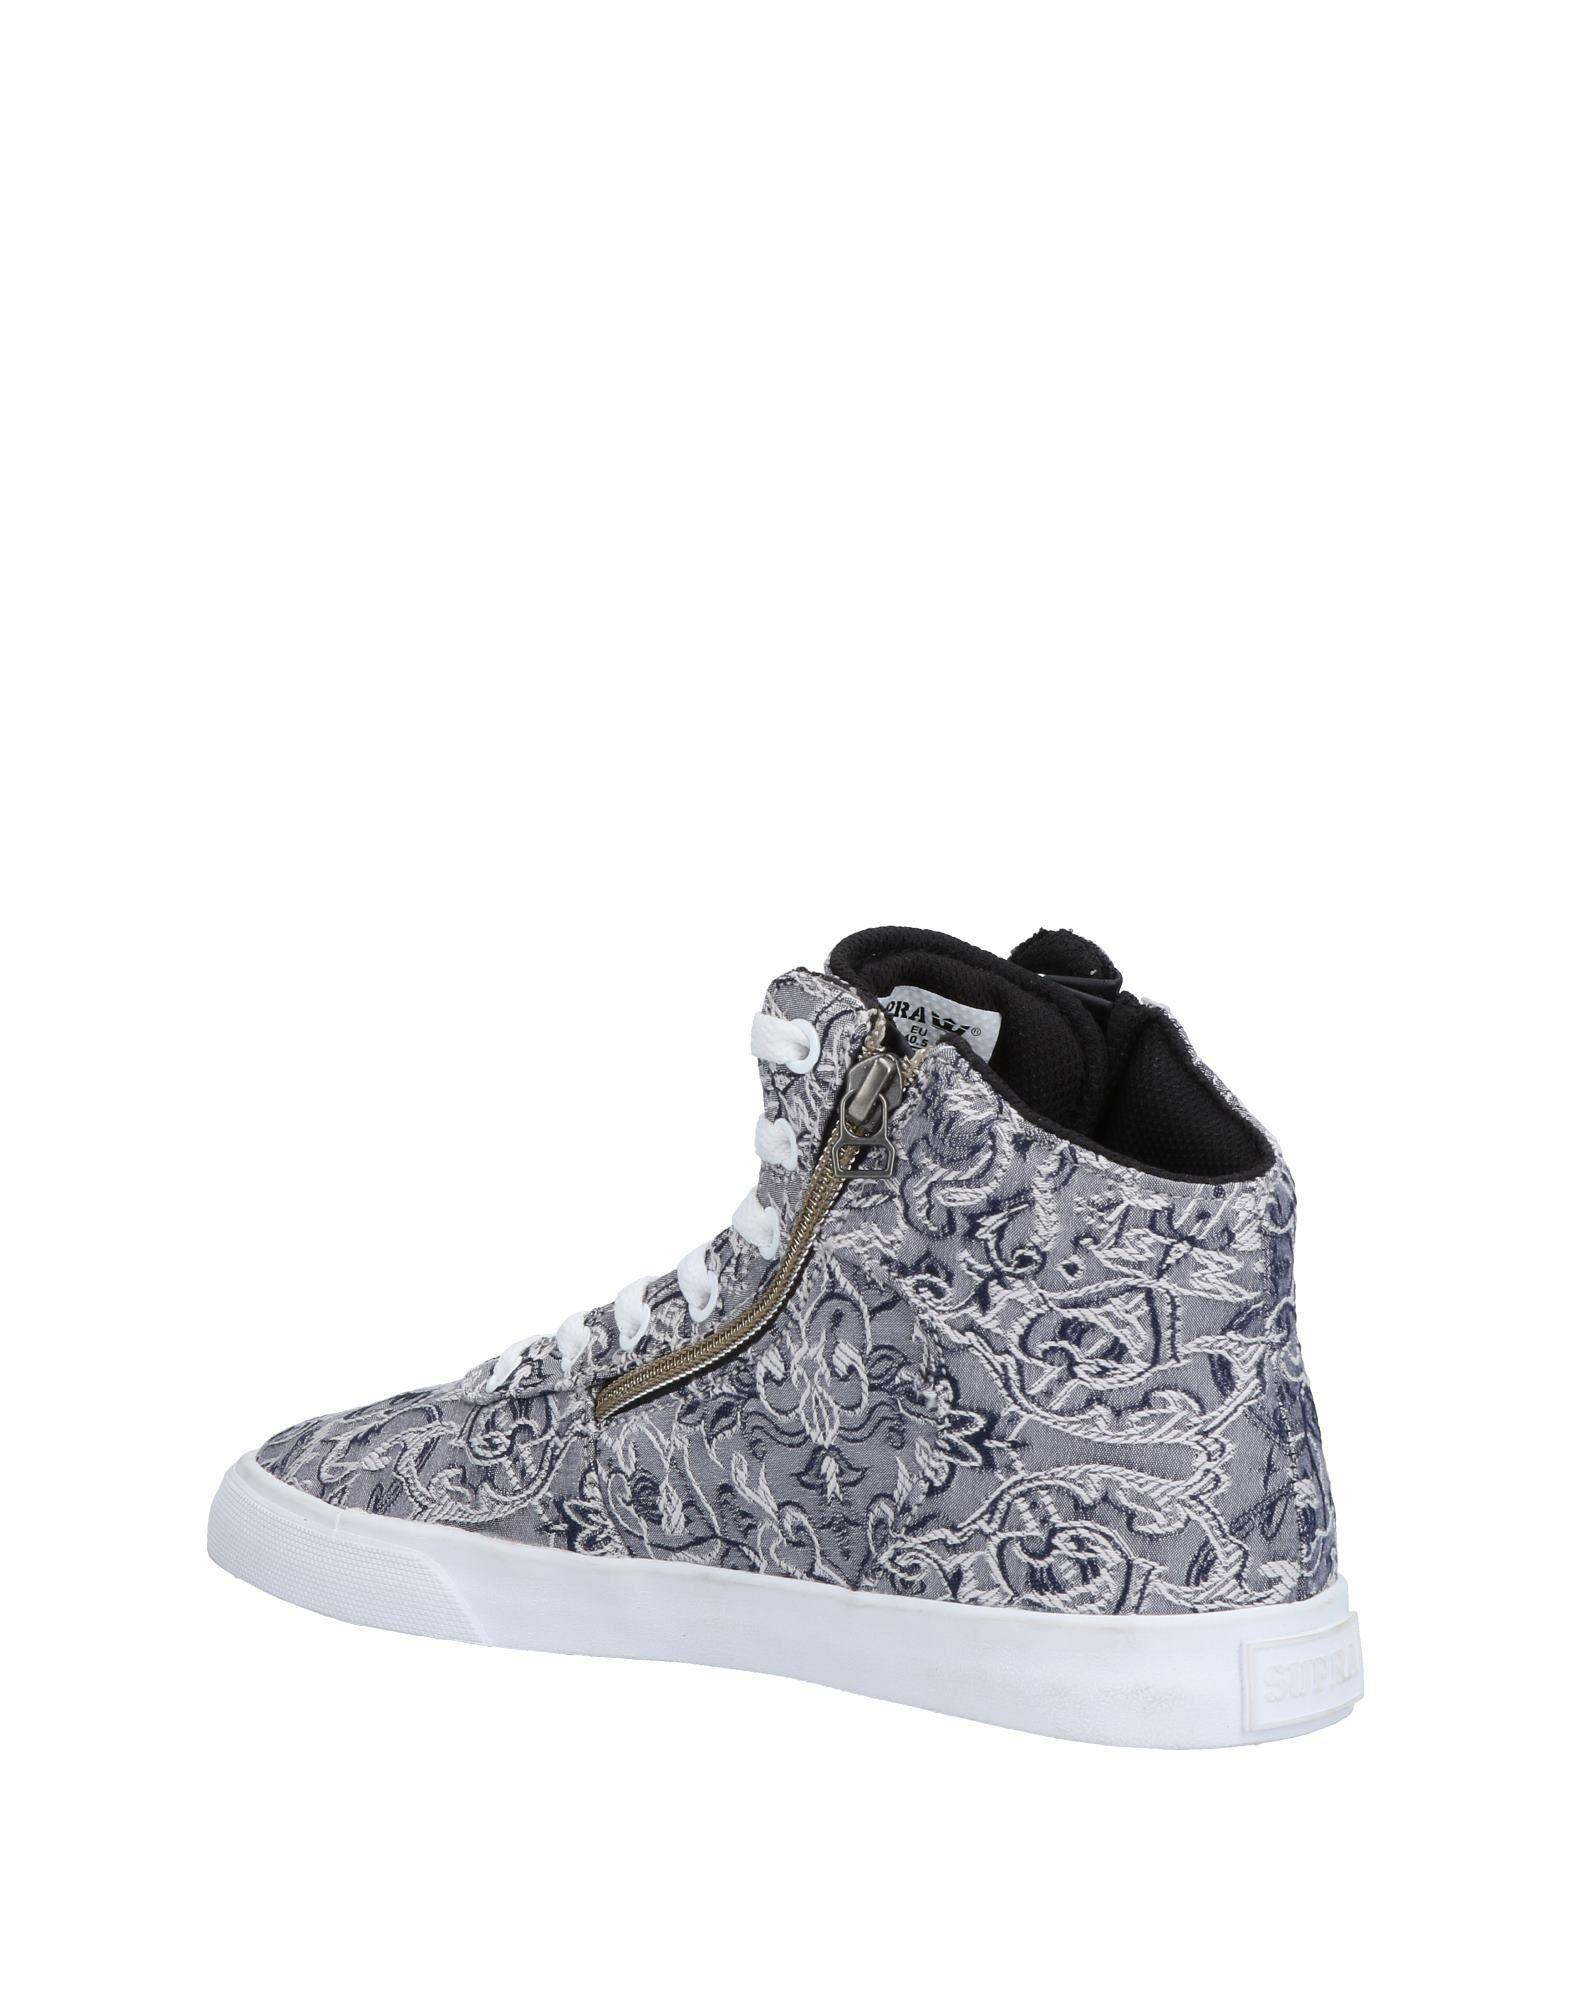 Supra Rubber High-tops & Sneakers in Blue